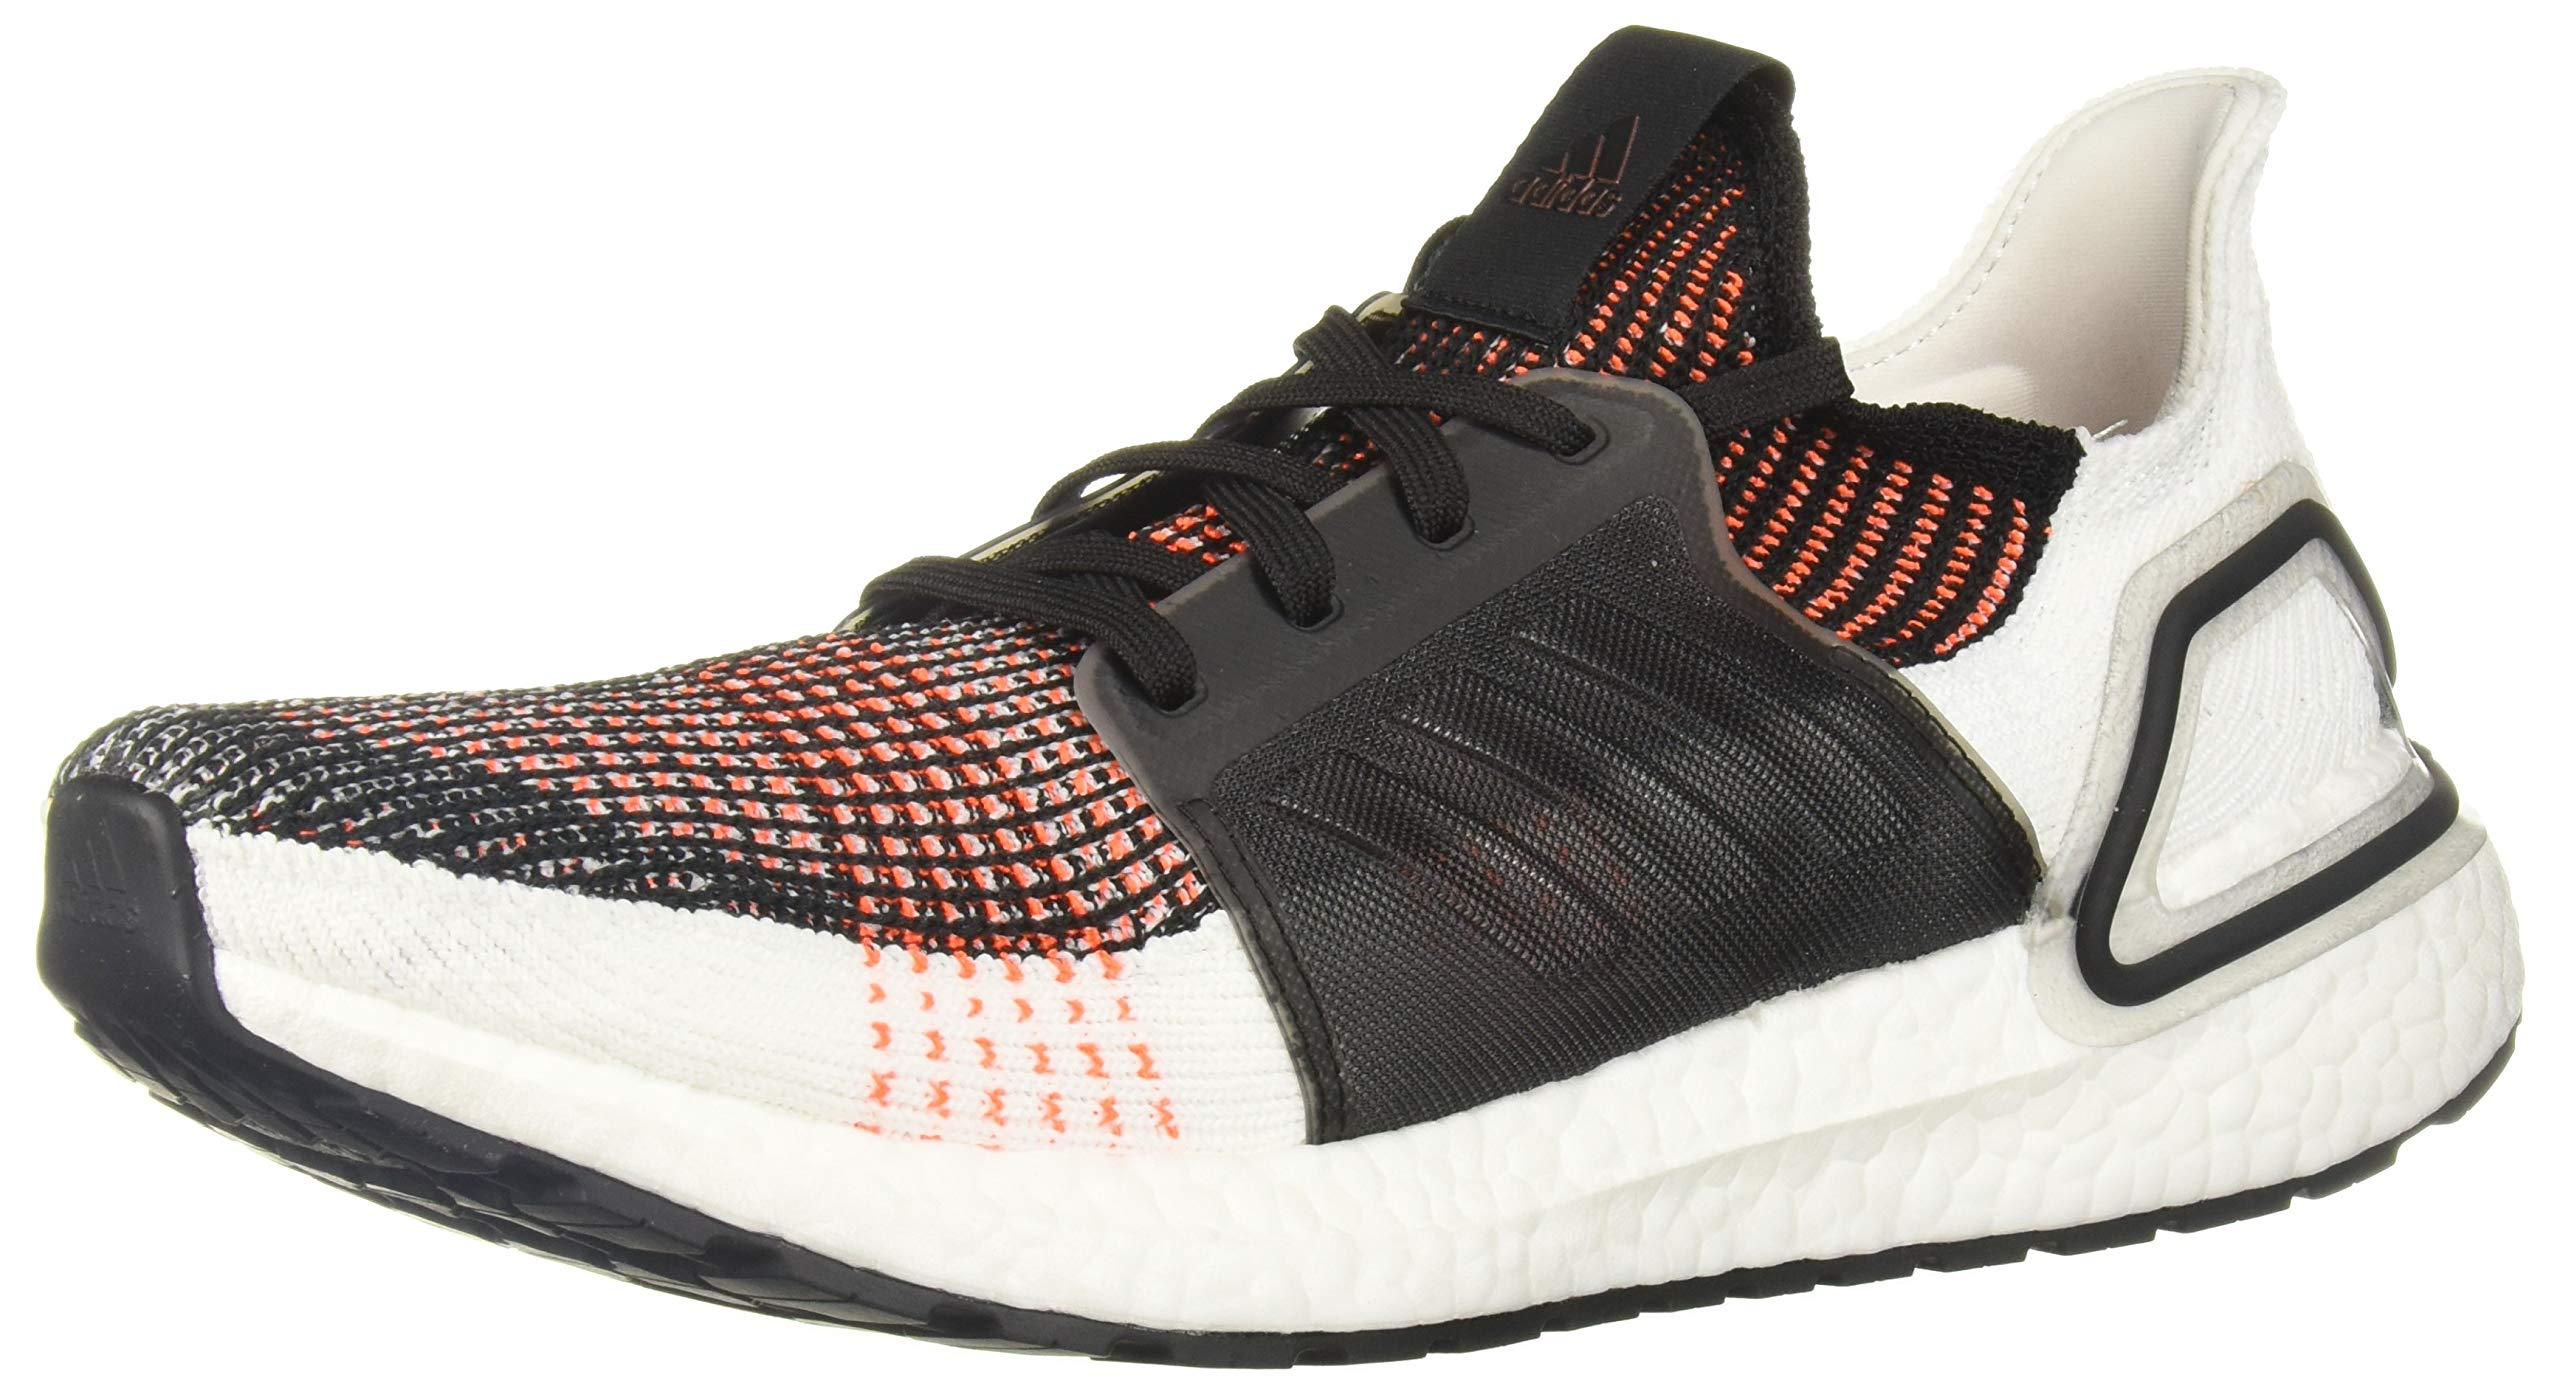 adidas Men's Ultraboost 19 Running Shoe, Black/White/Solar Orange, 7.5 M US by adidas